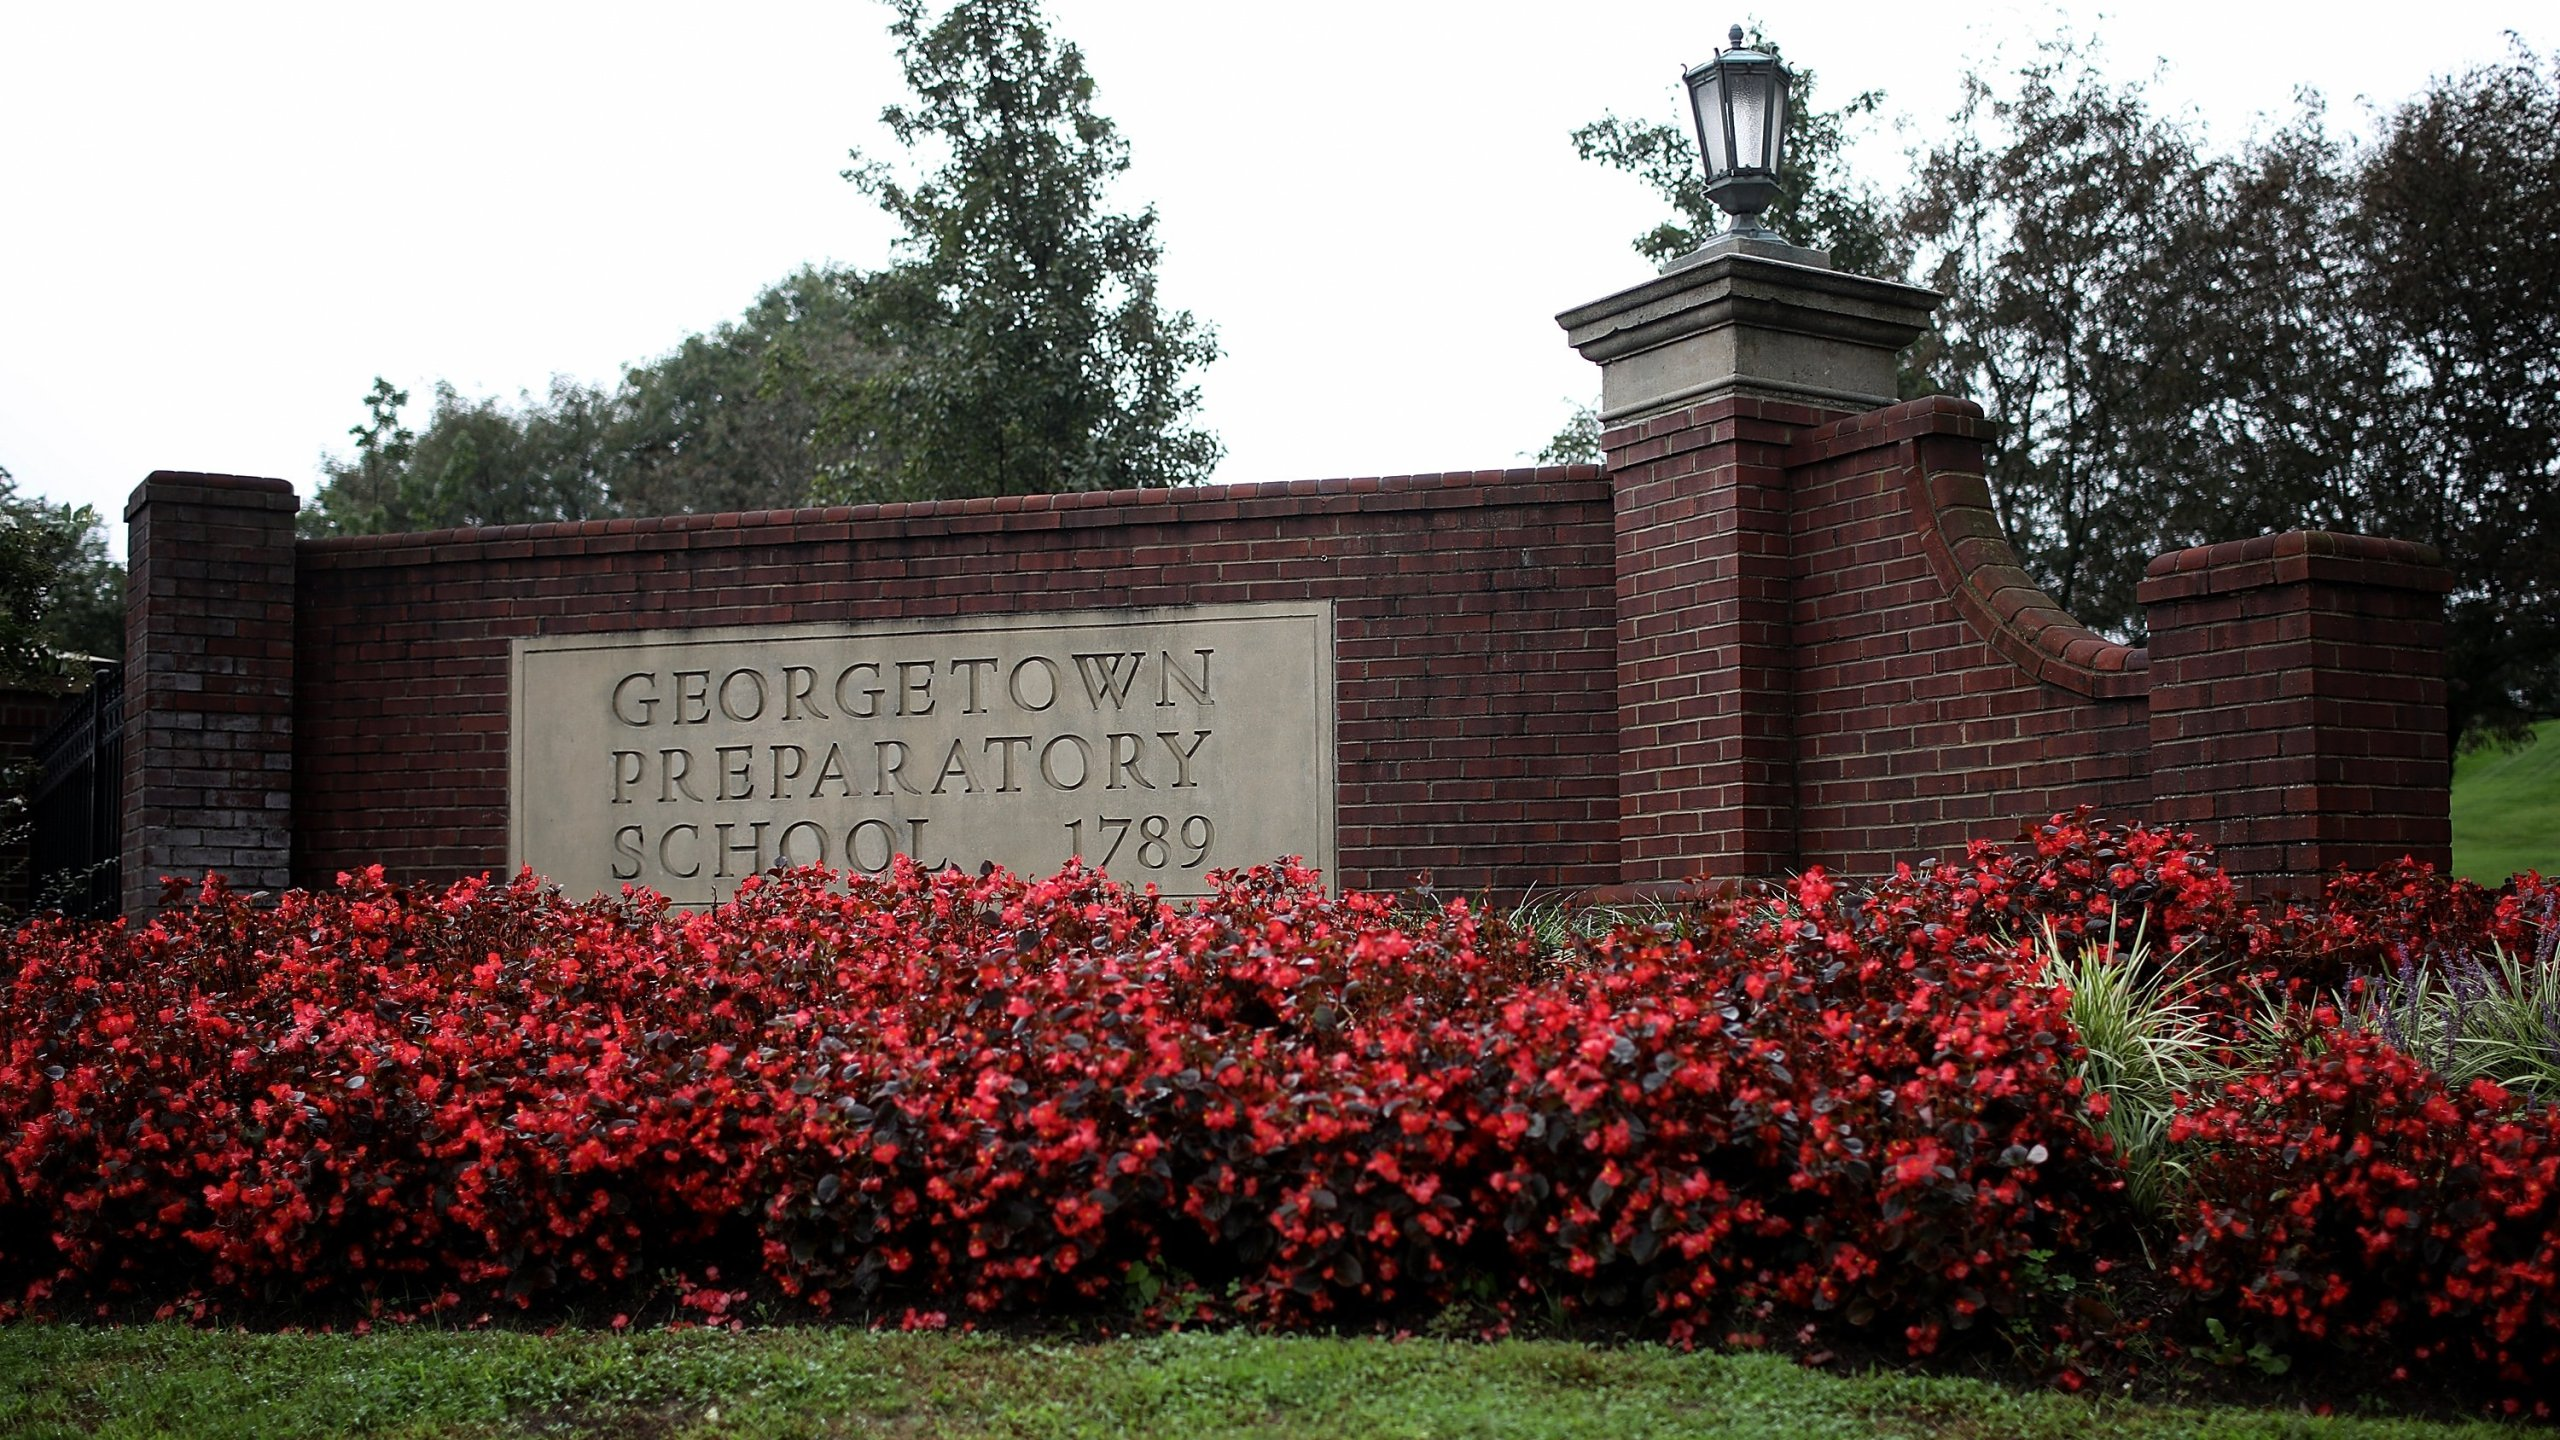 The entrance to the Georgetown Preparatory School is shown on Sept. 18, 2018, in Bethesda, Maryland. Supreme Court nominee Brett Kavanaugh attended the all-boys high school in the early 1980s. (Credit: Win McNamee/Getty Images)